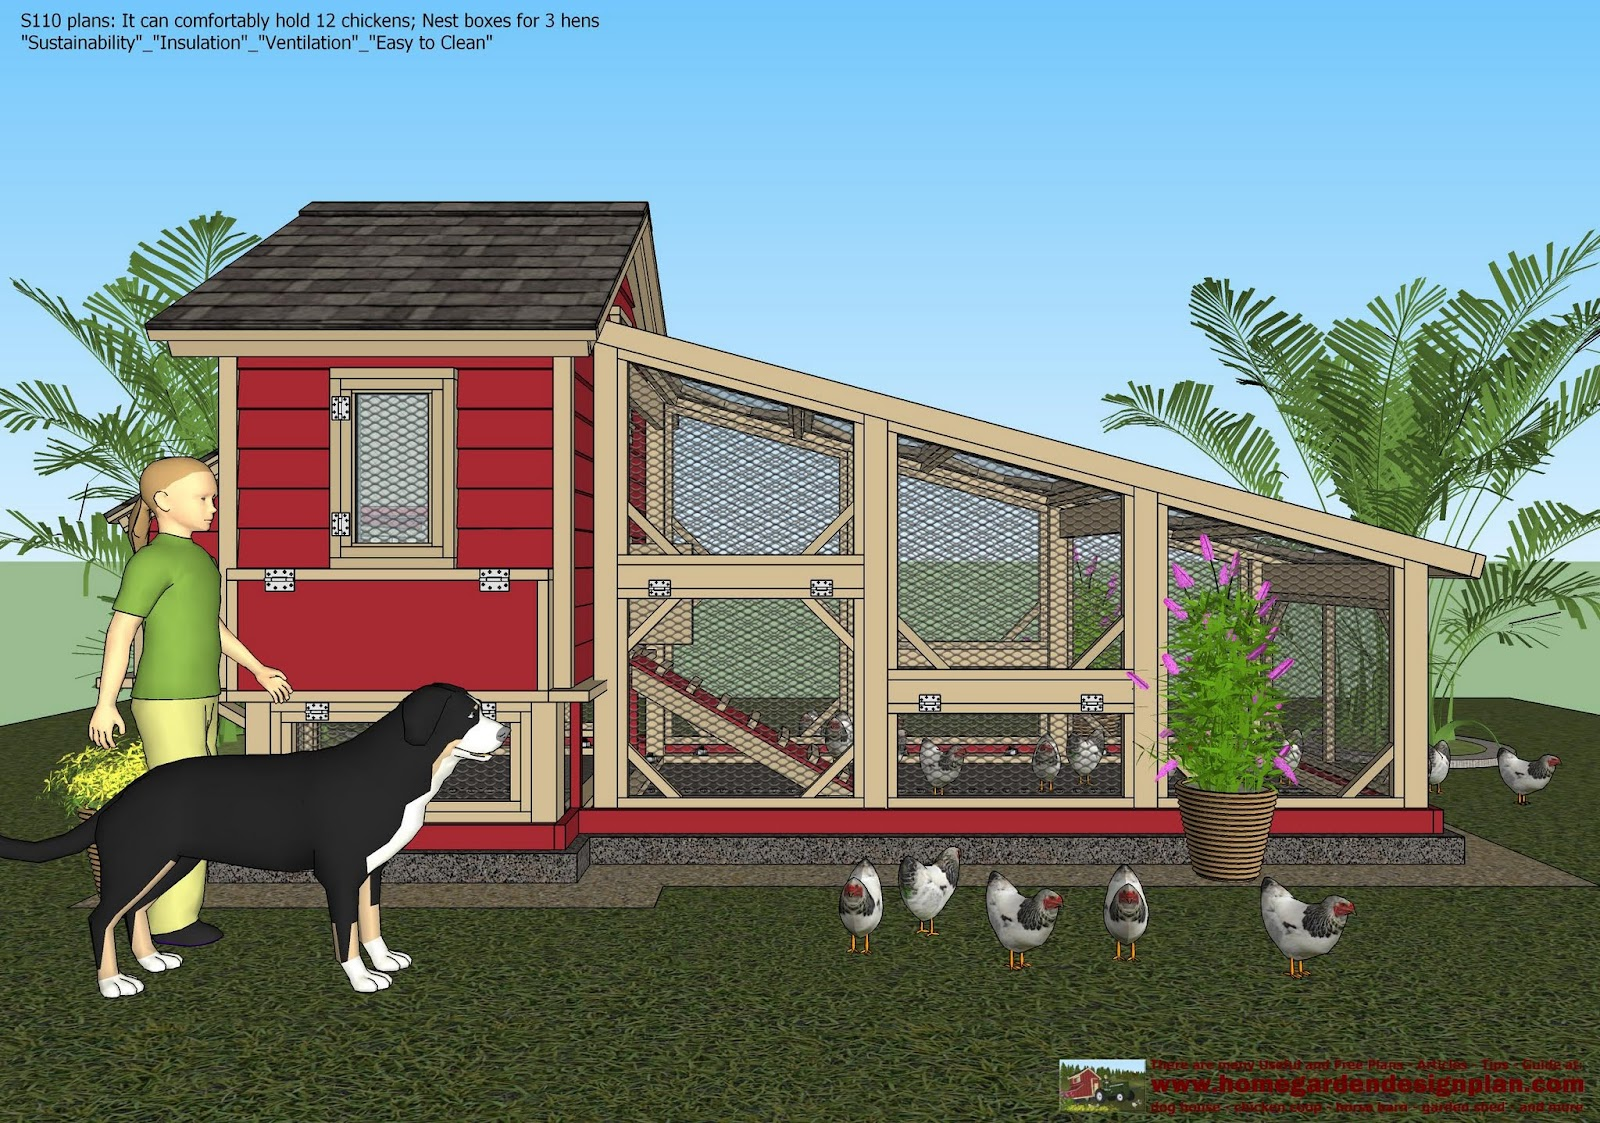 Home garden plans s110 chicken coop plans construction for Plans chicken coop